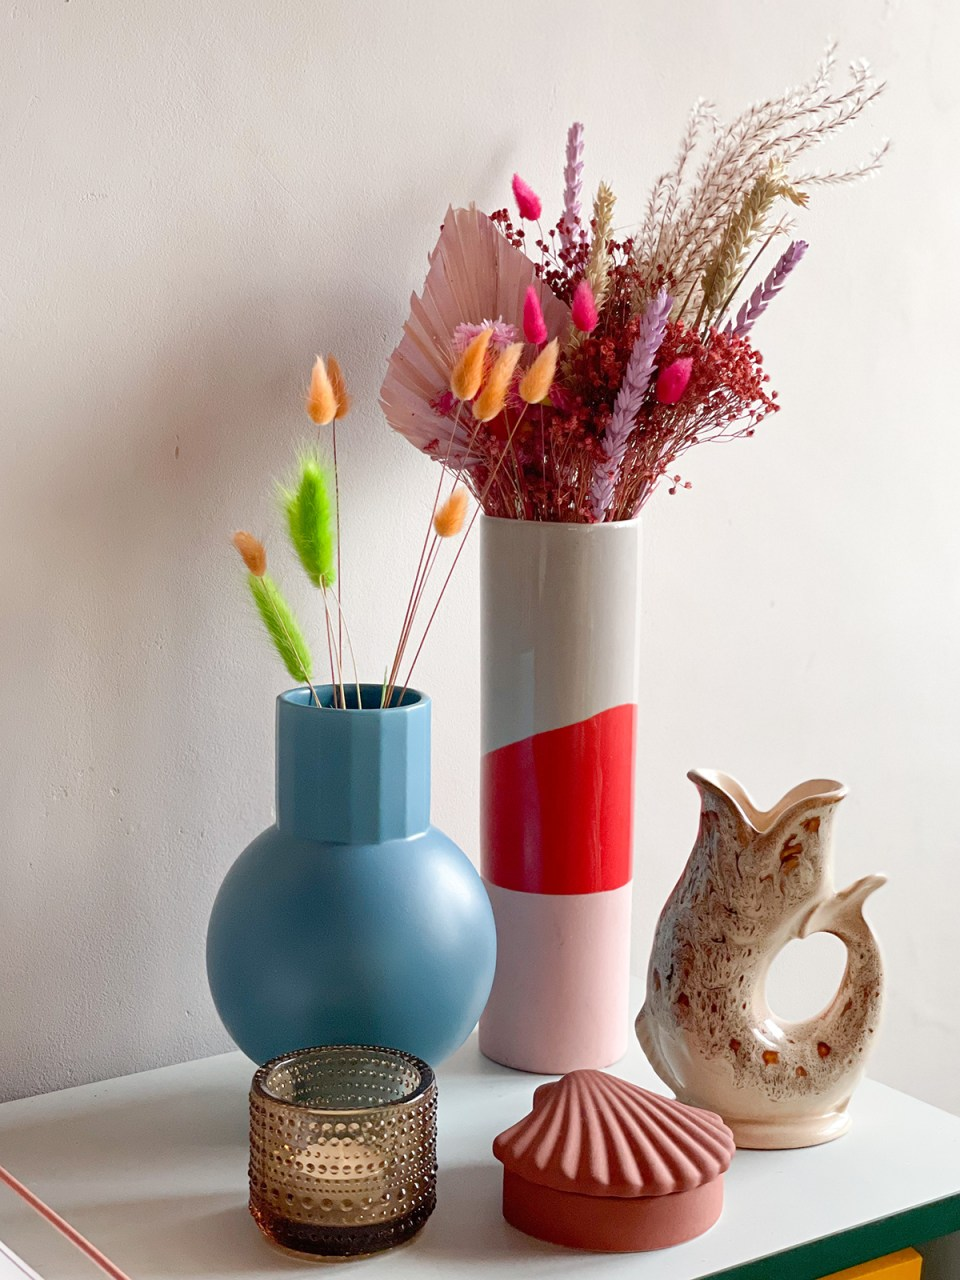 vases and decor with dried flowers